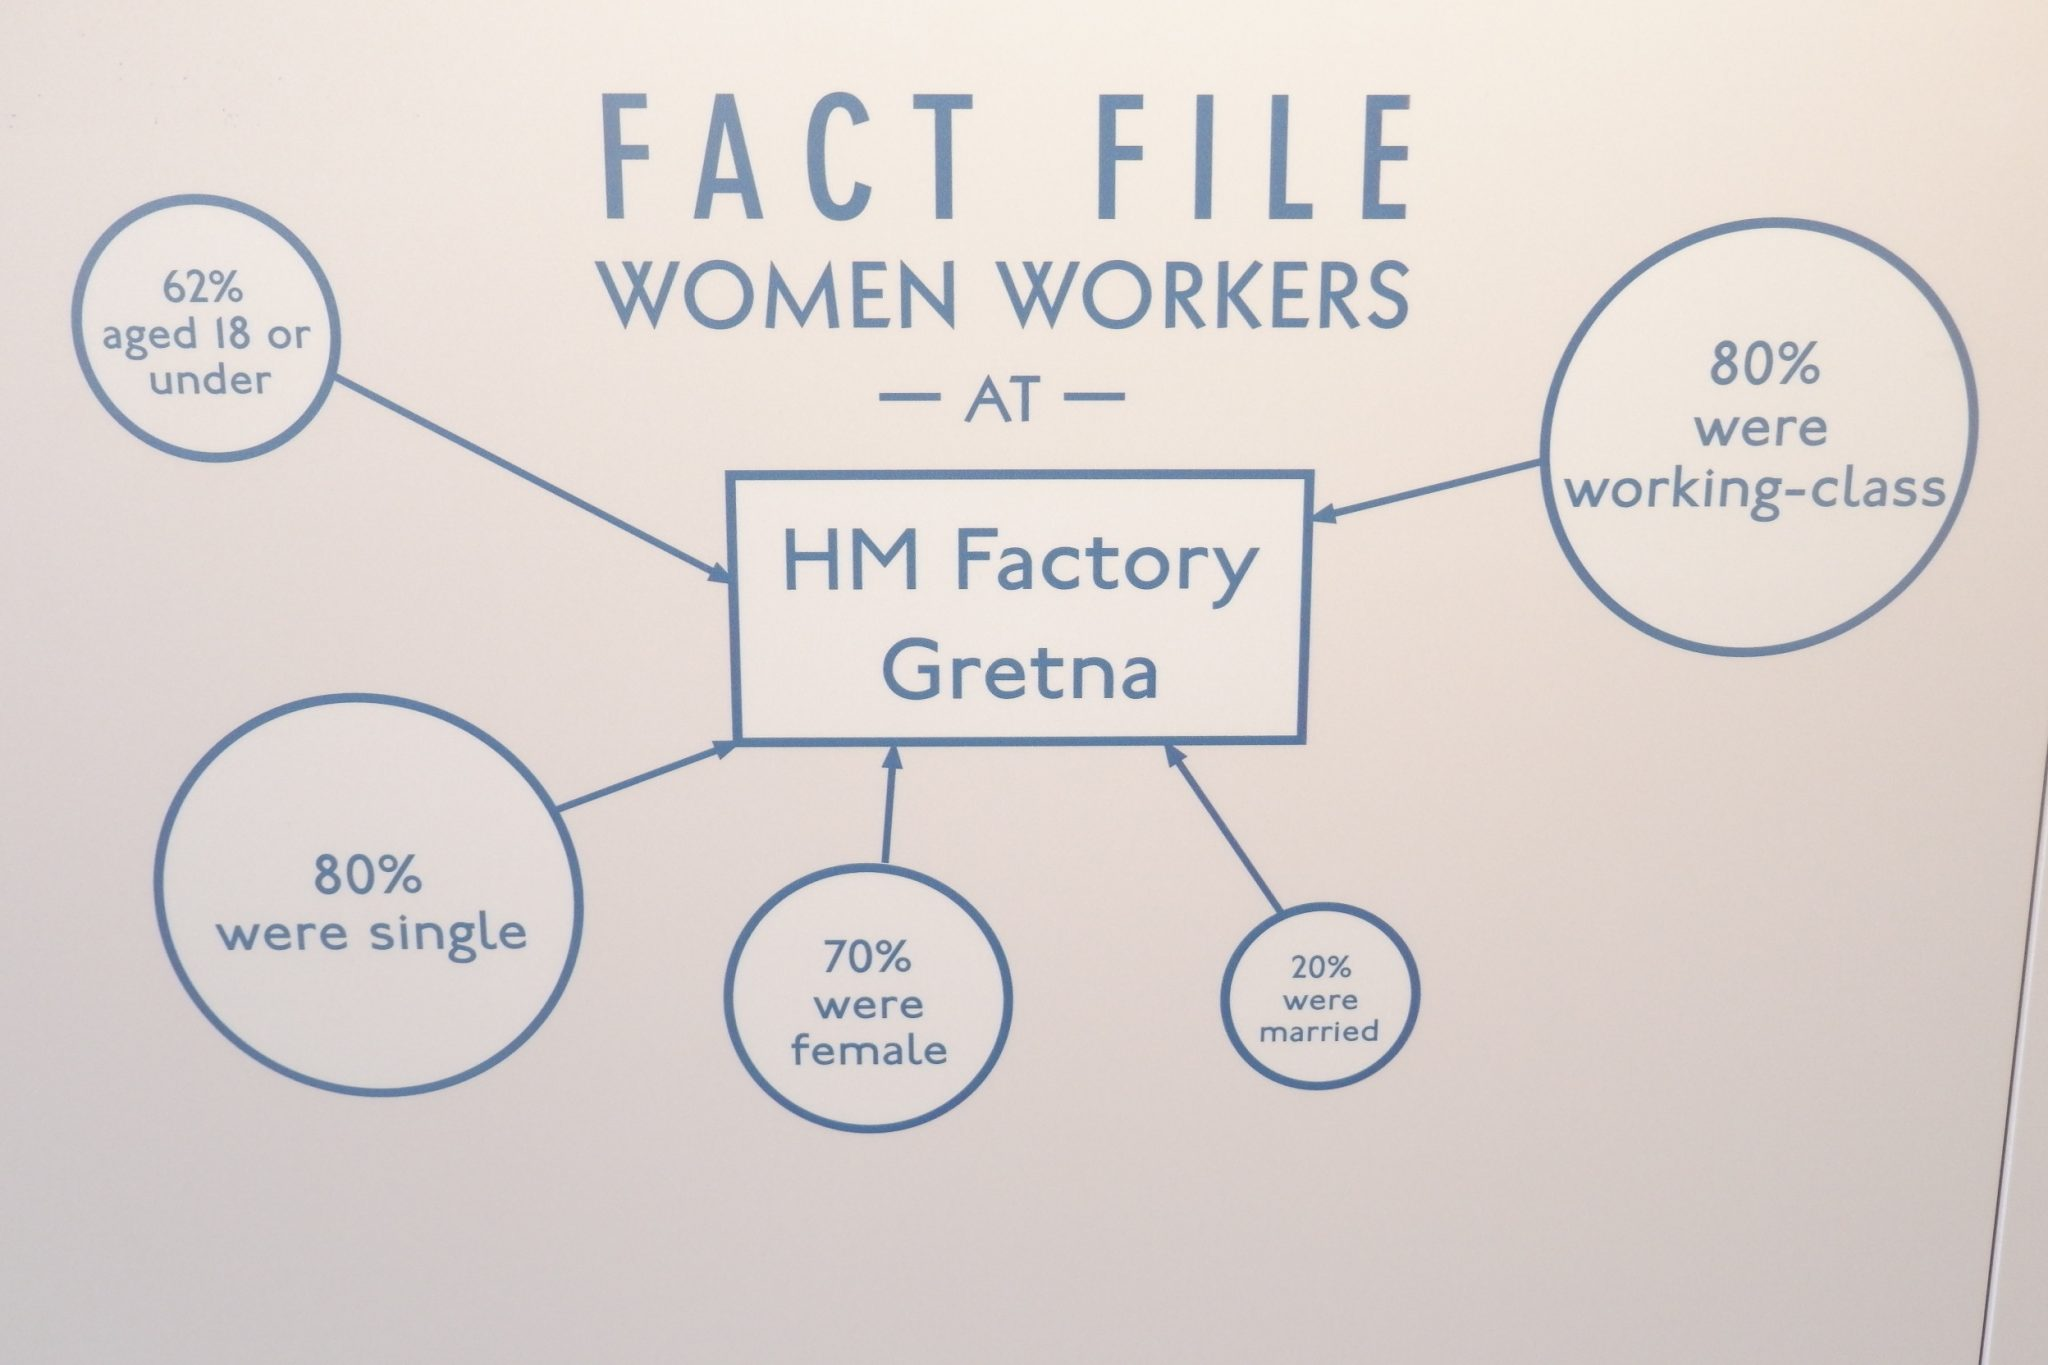 women who worked at hm factory gretna